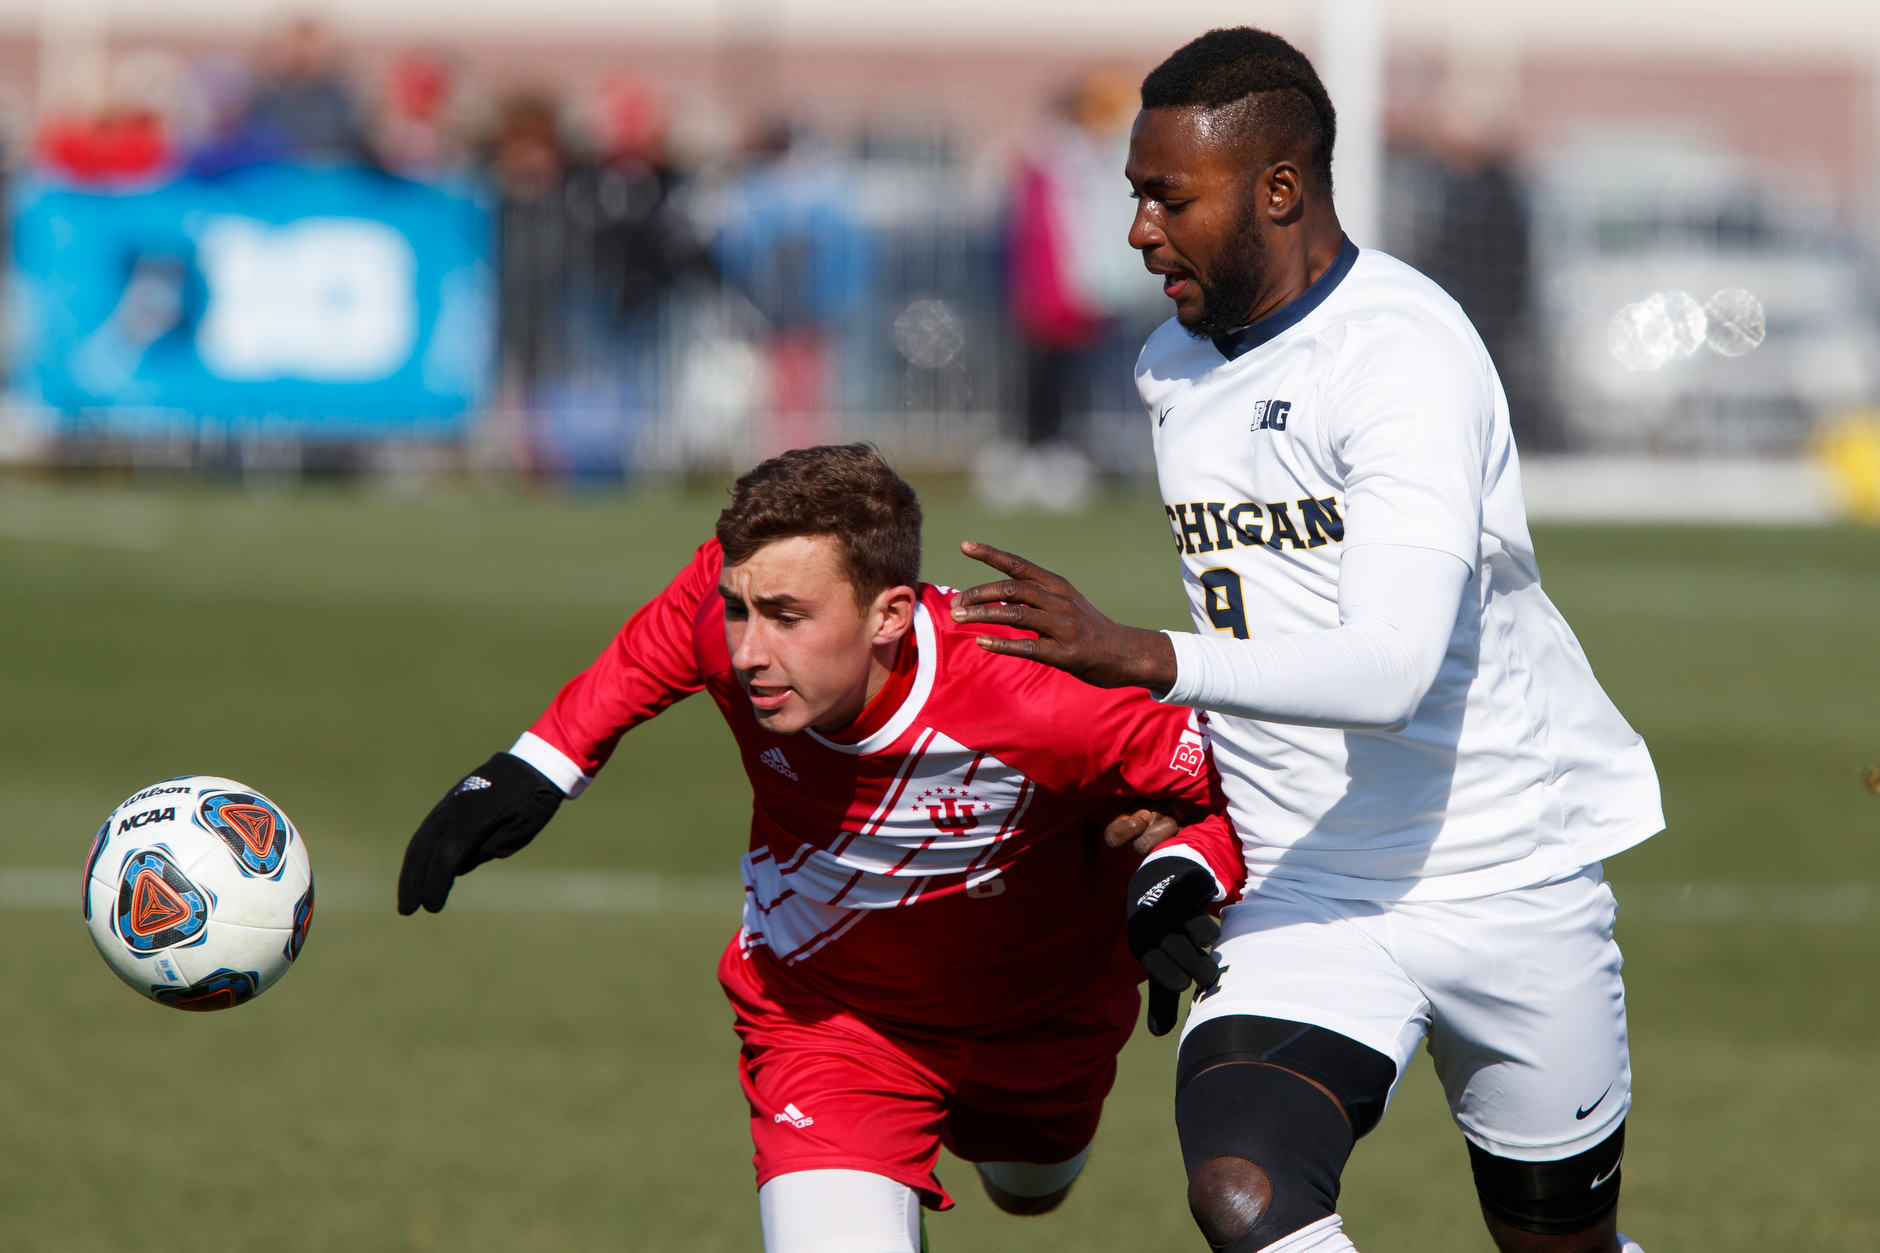 Michigan's Mohammed Zakyi (9) and Indiana's Jack Maher (6) play the ball during the Big Ten Men's Soccer Tournament championship game at Grand Park in Westfield, Indiana on Sunday, Nov. 11, 2018. (Photo by James Brosher)